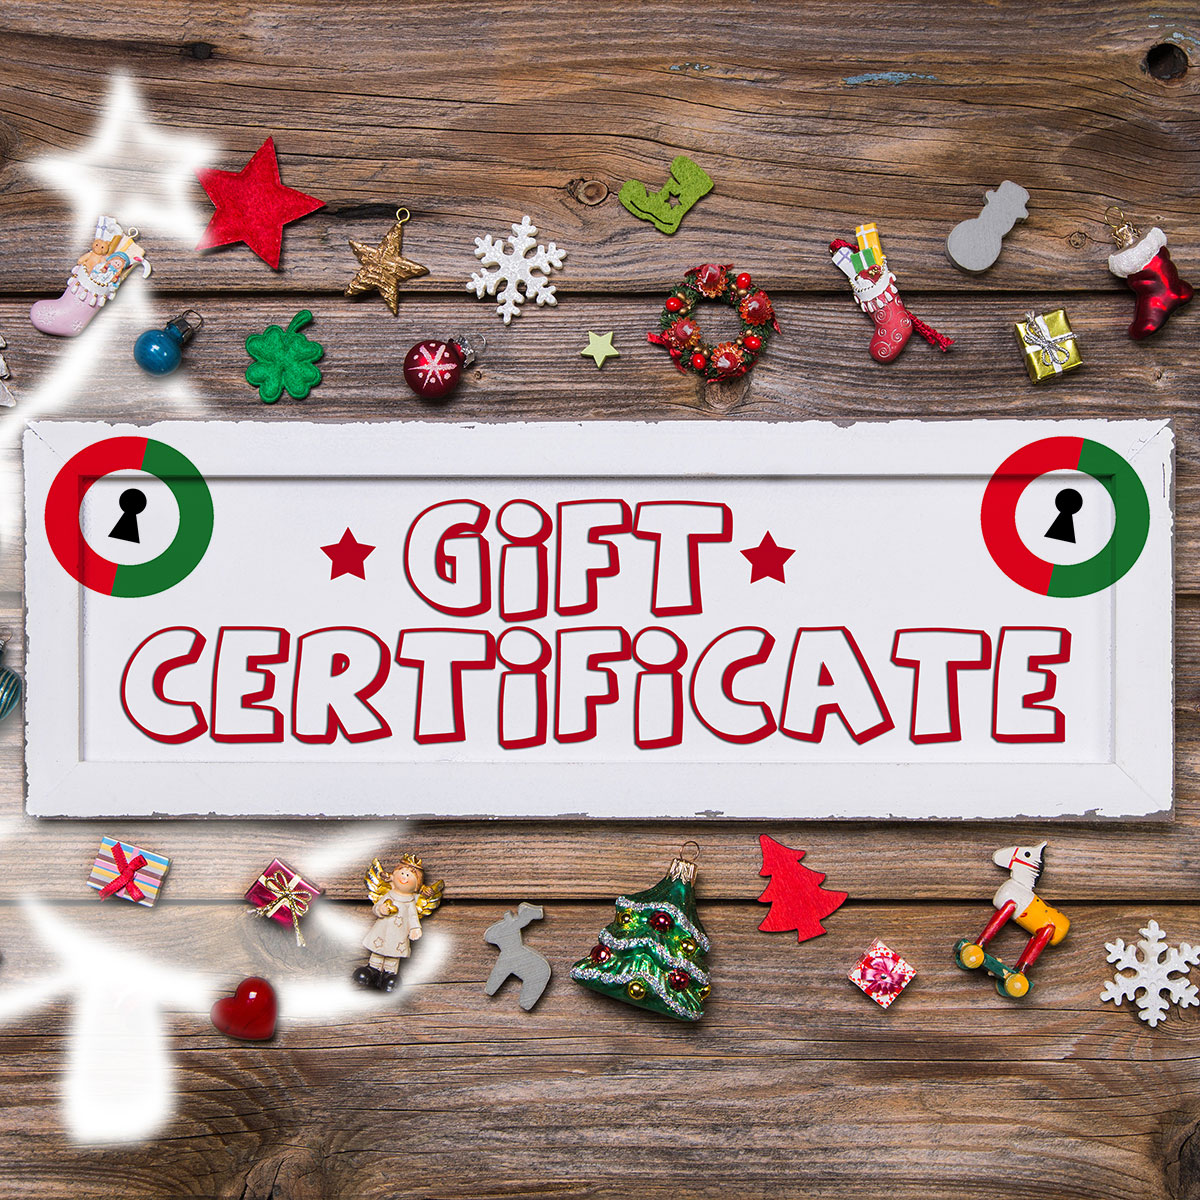 Gift-A-Mission, Escape Room Gift Certificates